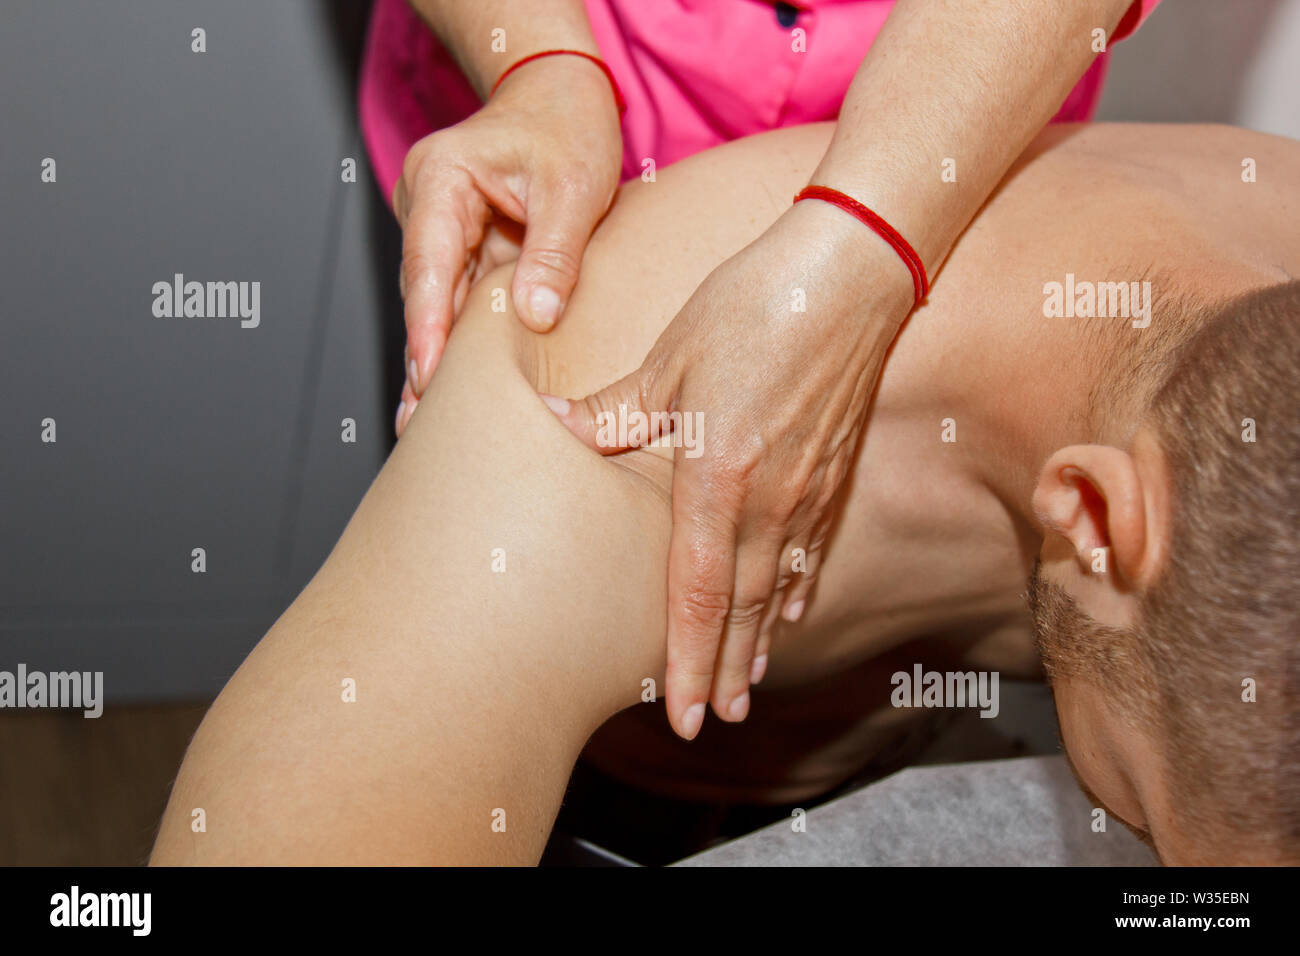 professional therapeutic shoulder and neck massage. woman doctor massages a man athlete in a massage room. body and health care. procedure for recover - Stock Image